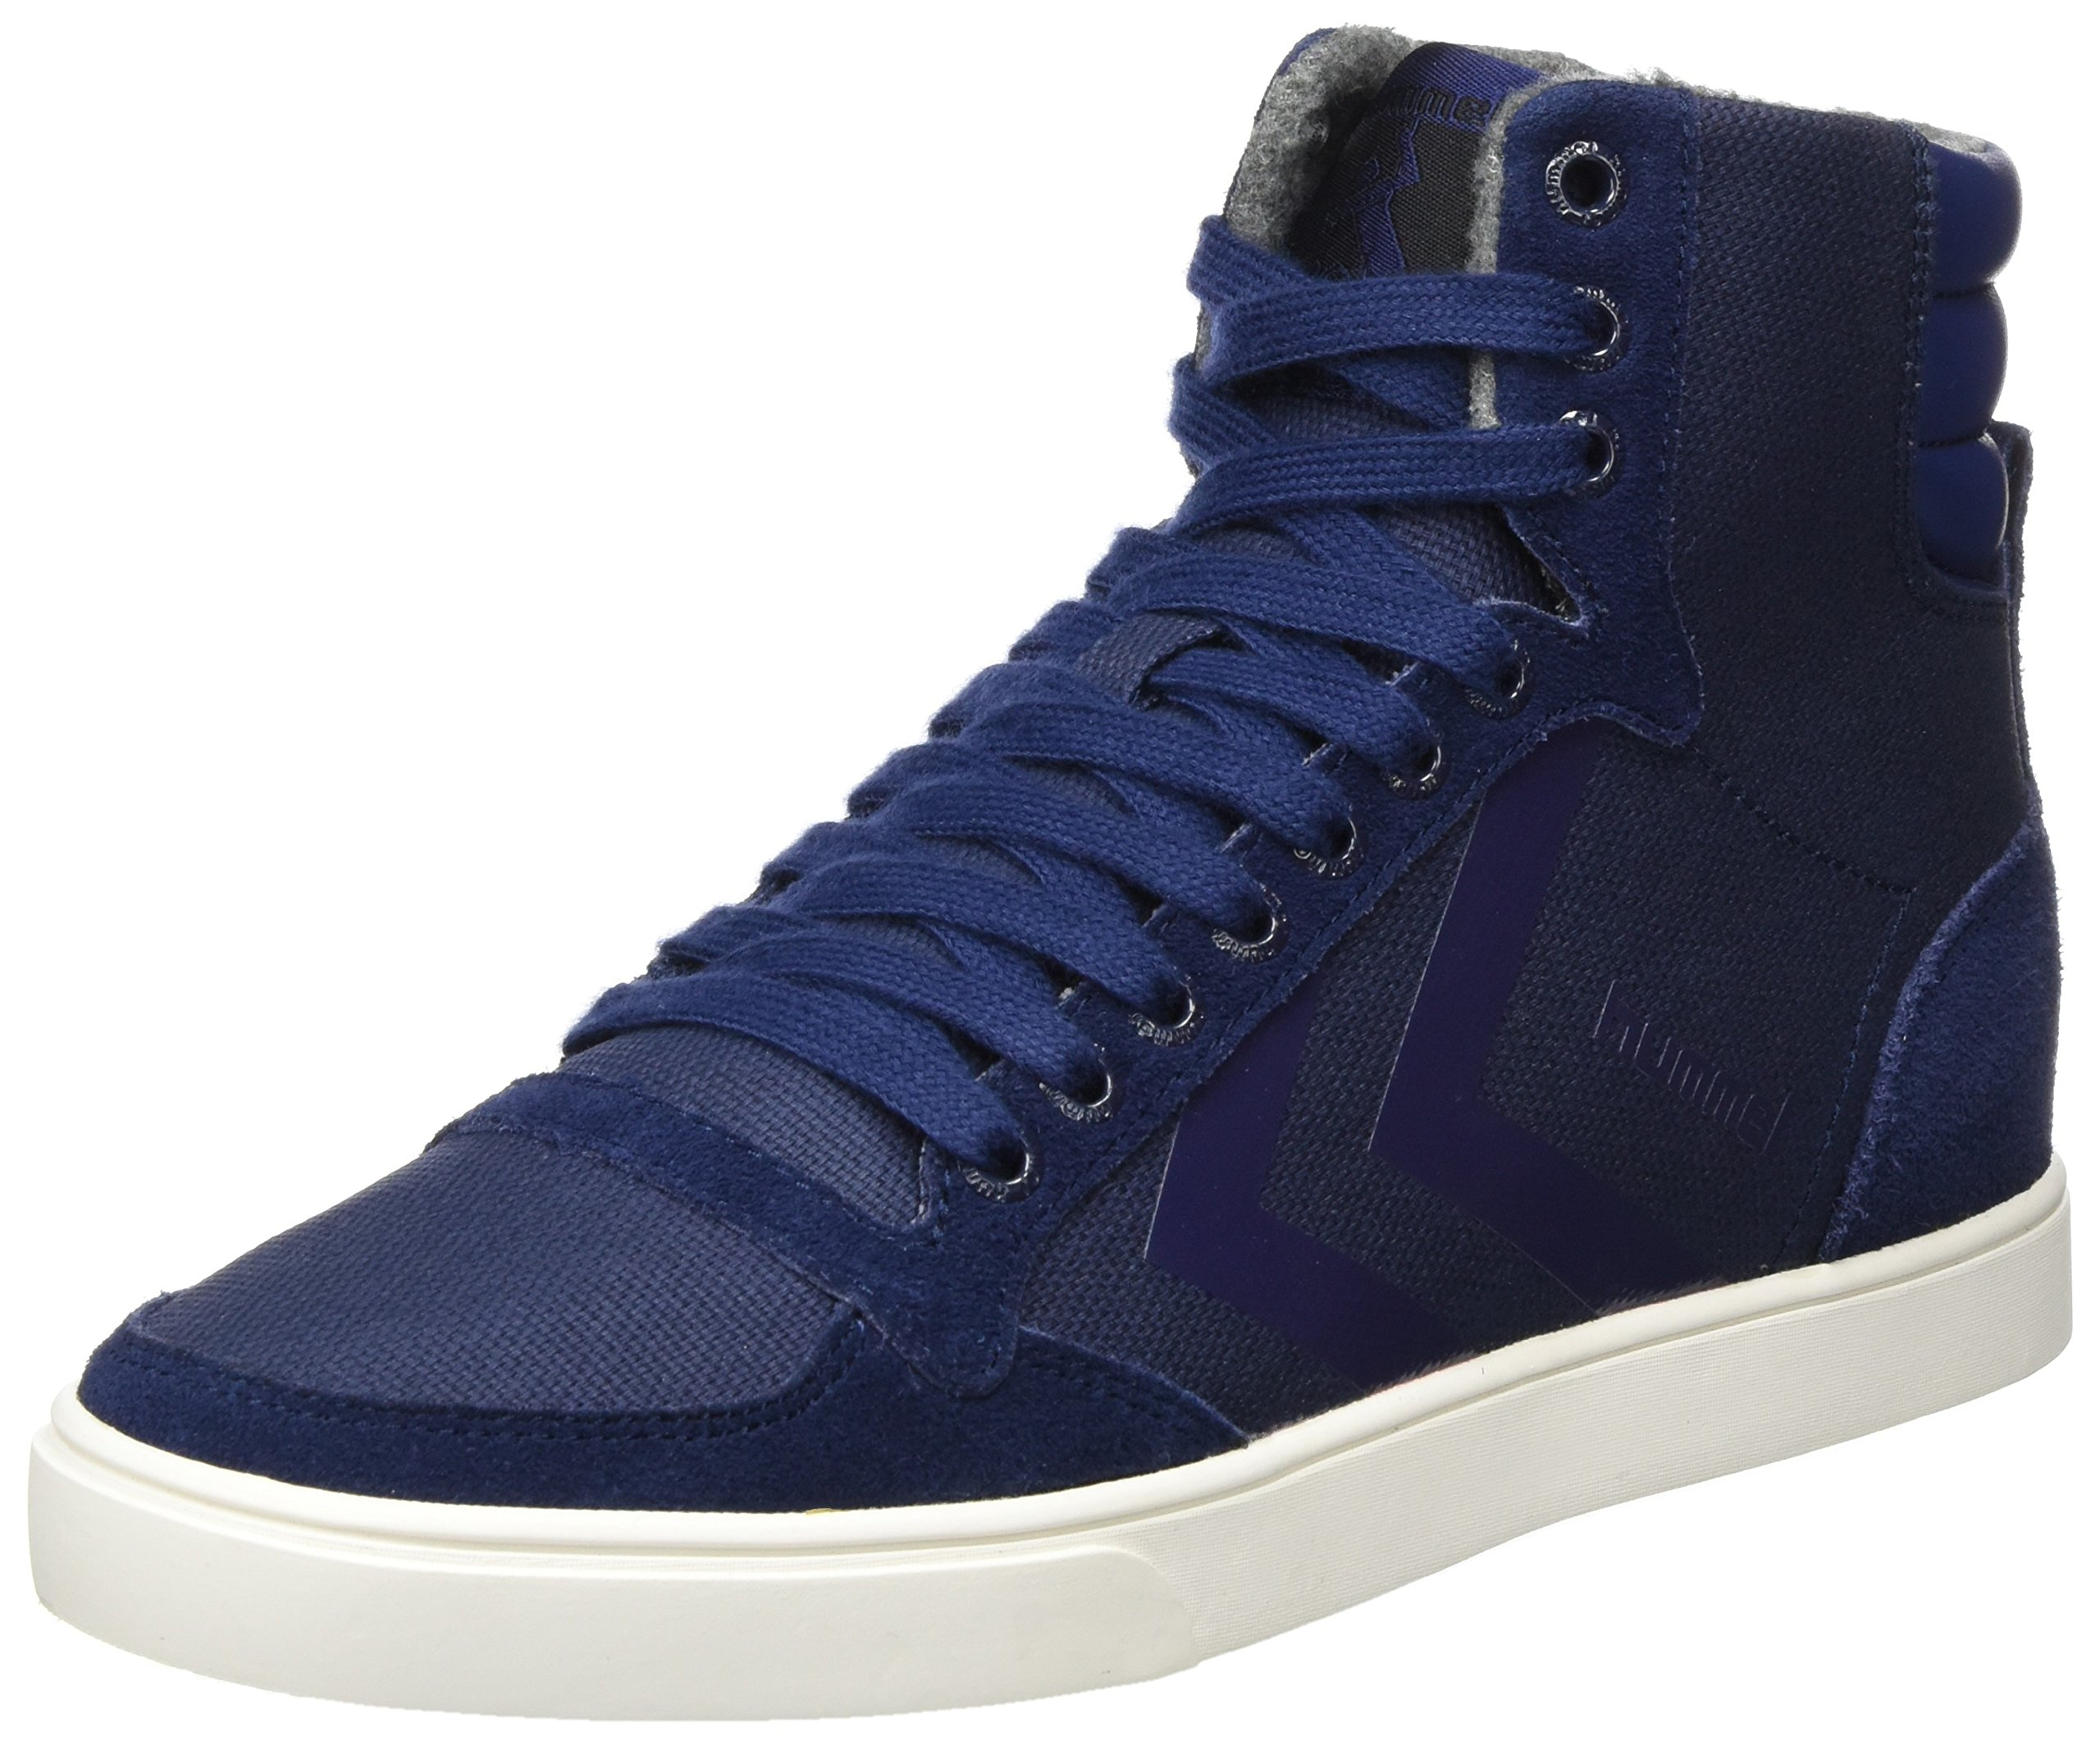 Hummel Unisex Adults' Slimmer Stadil Smooth Canvas Hi-Top Trainers, Blue (Peacoat 7666), 6.5 UK